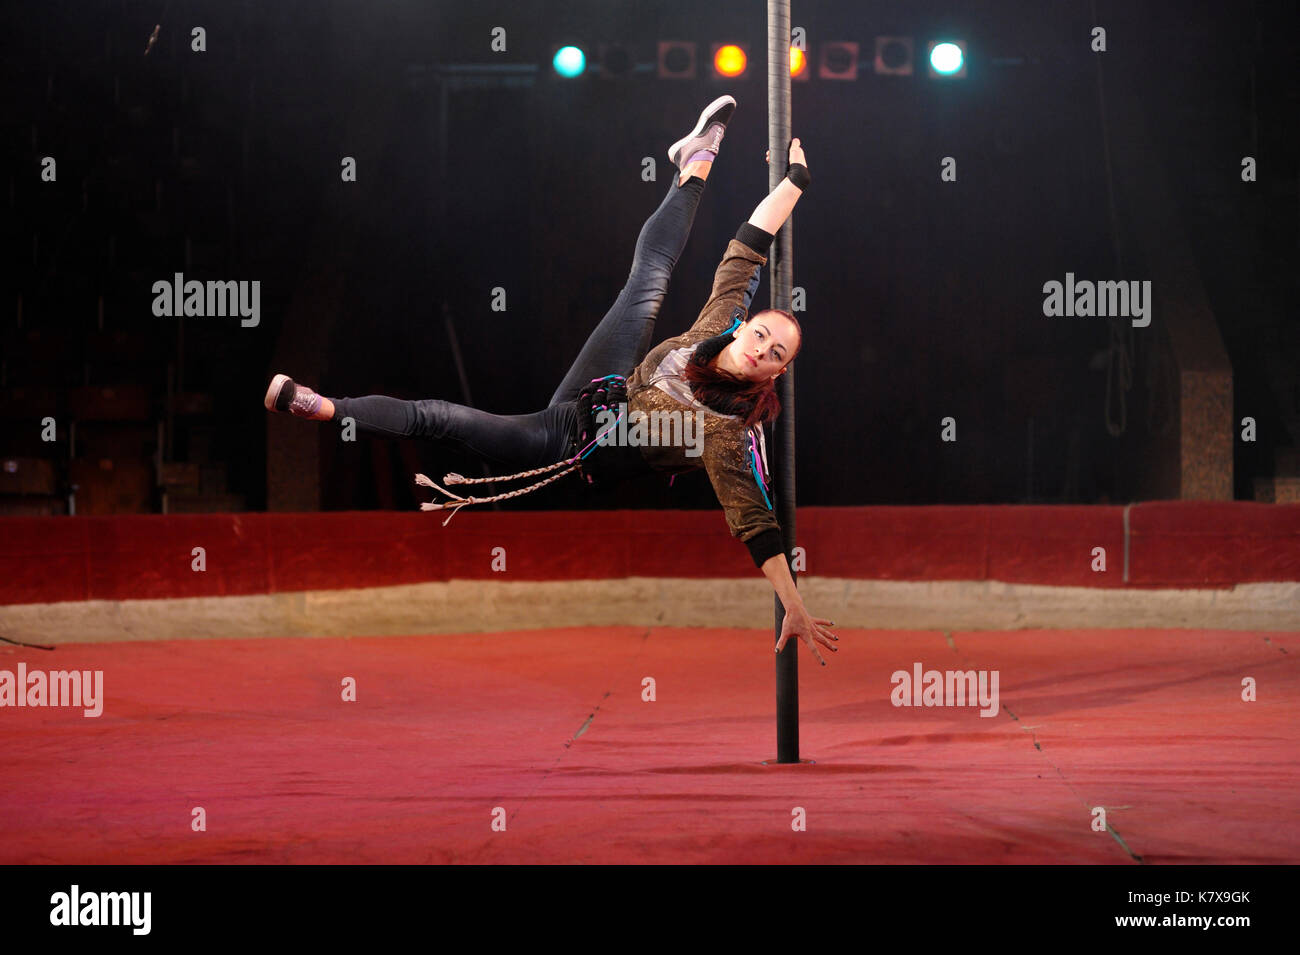 Rehearsal of the National Circus of Ukraine artists. Pole dance (chorde-de-pareil). - Stock Image